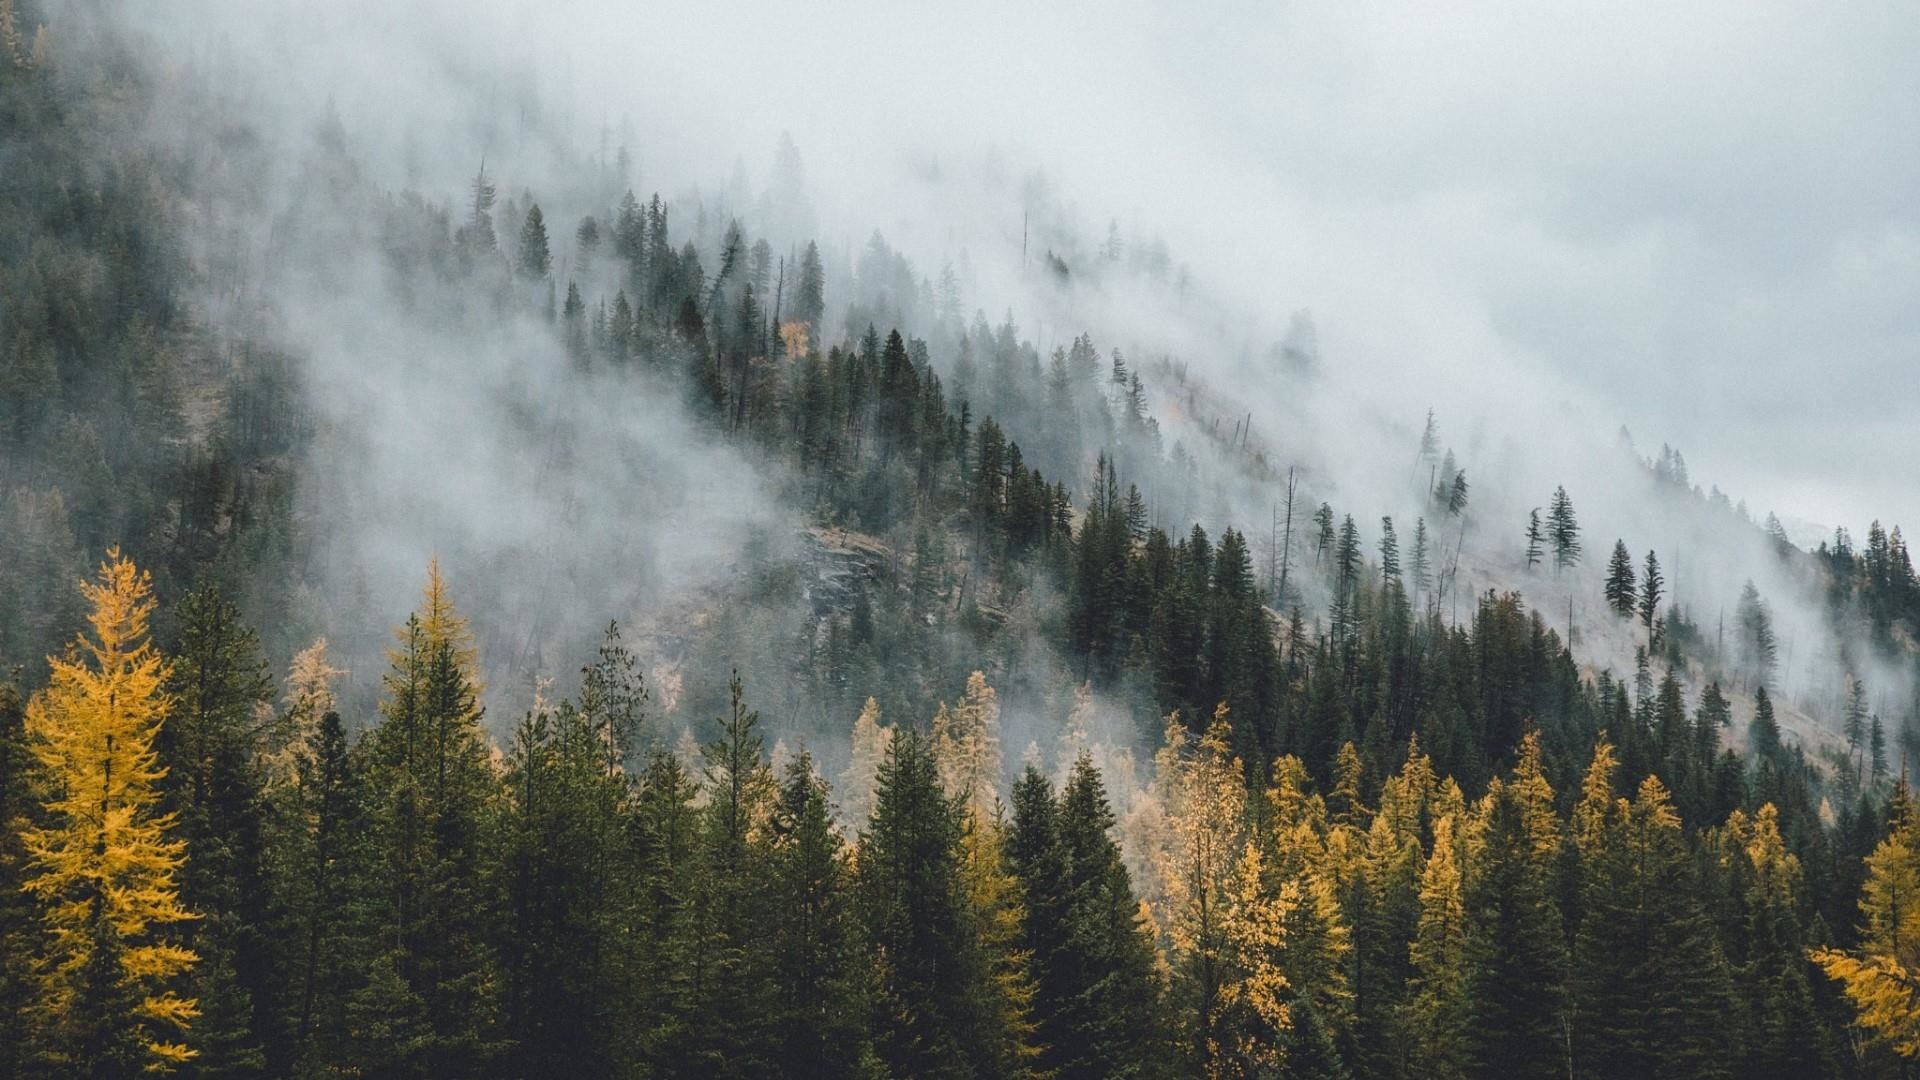 Res: 1920x1080, Misty Pine Forest Wallpaper | Wallpaper Studio 10 | Tens of thousands HD  and UltraHD wallpapers for Android, Windows and Xbox